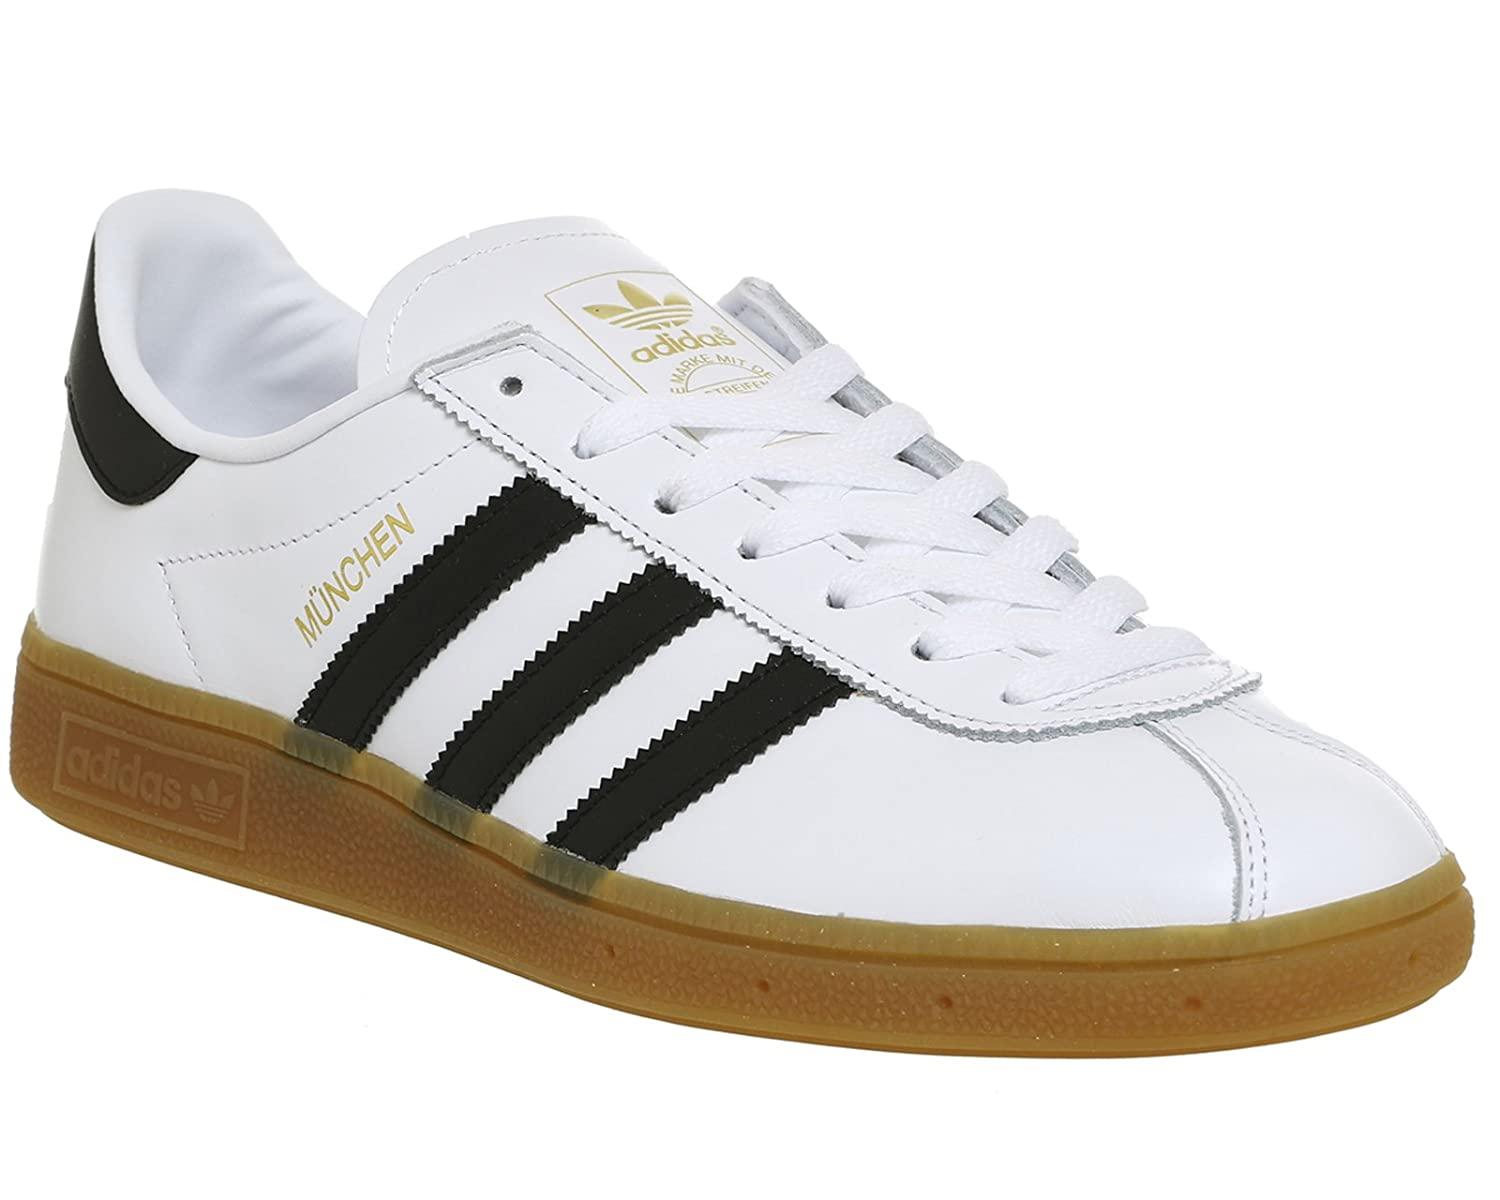 d800e9238 adidas Men s Munchen Bb2778 Trainers  adidas Originals  Amazon.co.uk   Sports   Outdoors